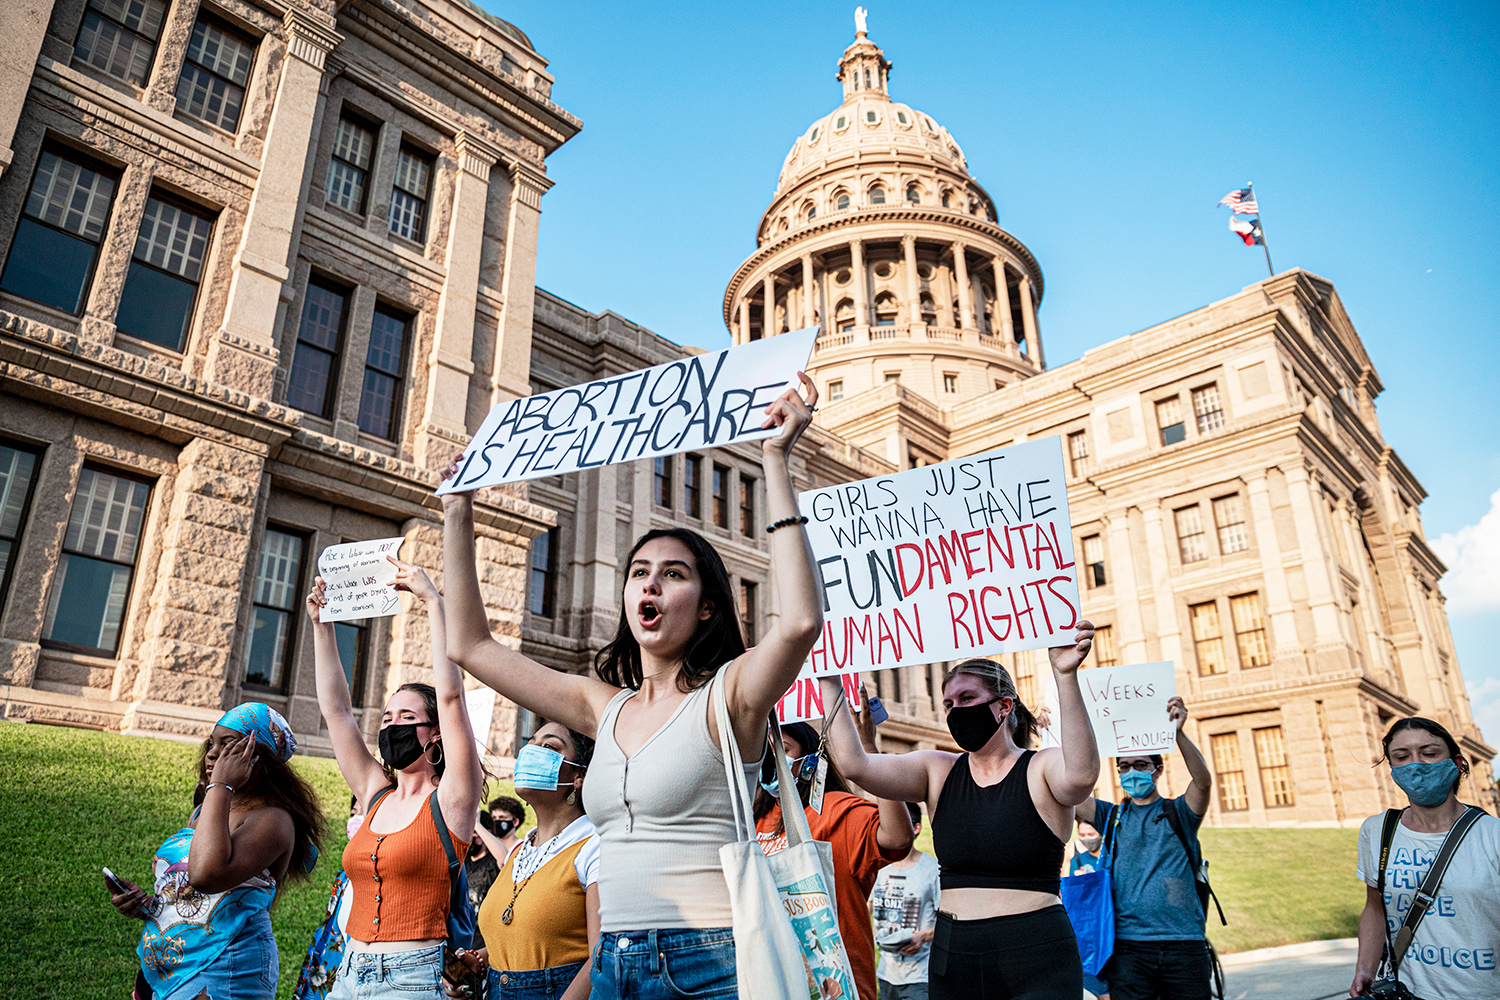 AUSTIN, TX - SEPT 1: Pro-choice protesters march outside the Texas State Capitol on Wednesday, Sept. 1, 2021 in Austin, TX. Texas passed SB8 which effectively bans nearly all abortions and it went into effect Sept. 1. A request to the Supreme Court to block the bill went unanswered and the Court still has yet to take any action on it.